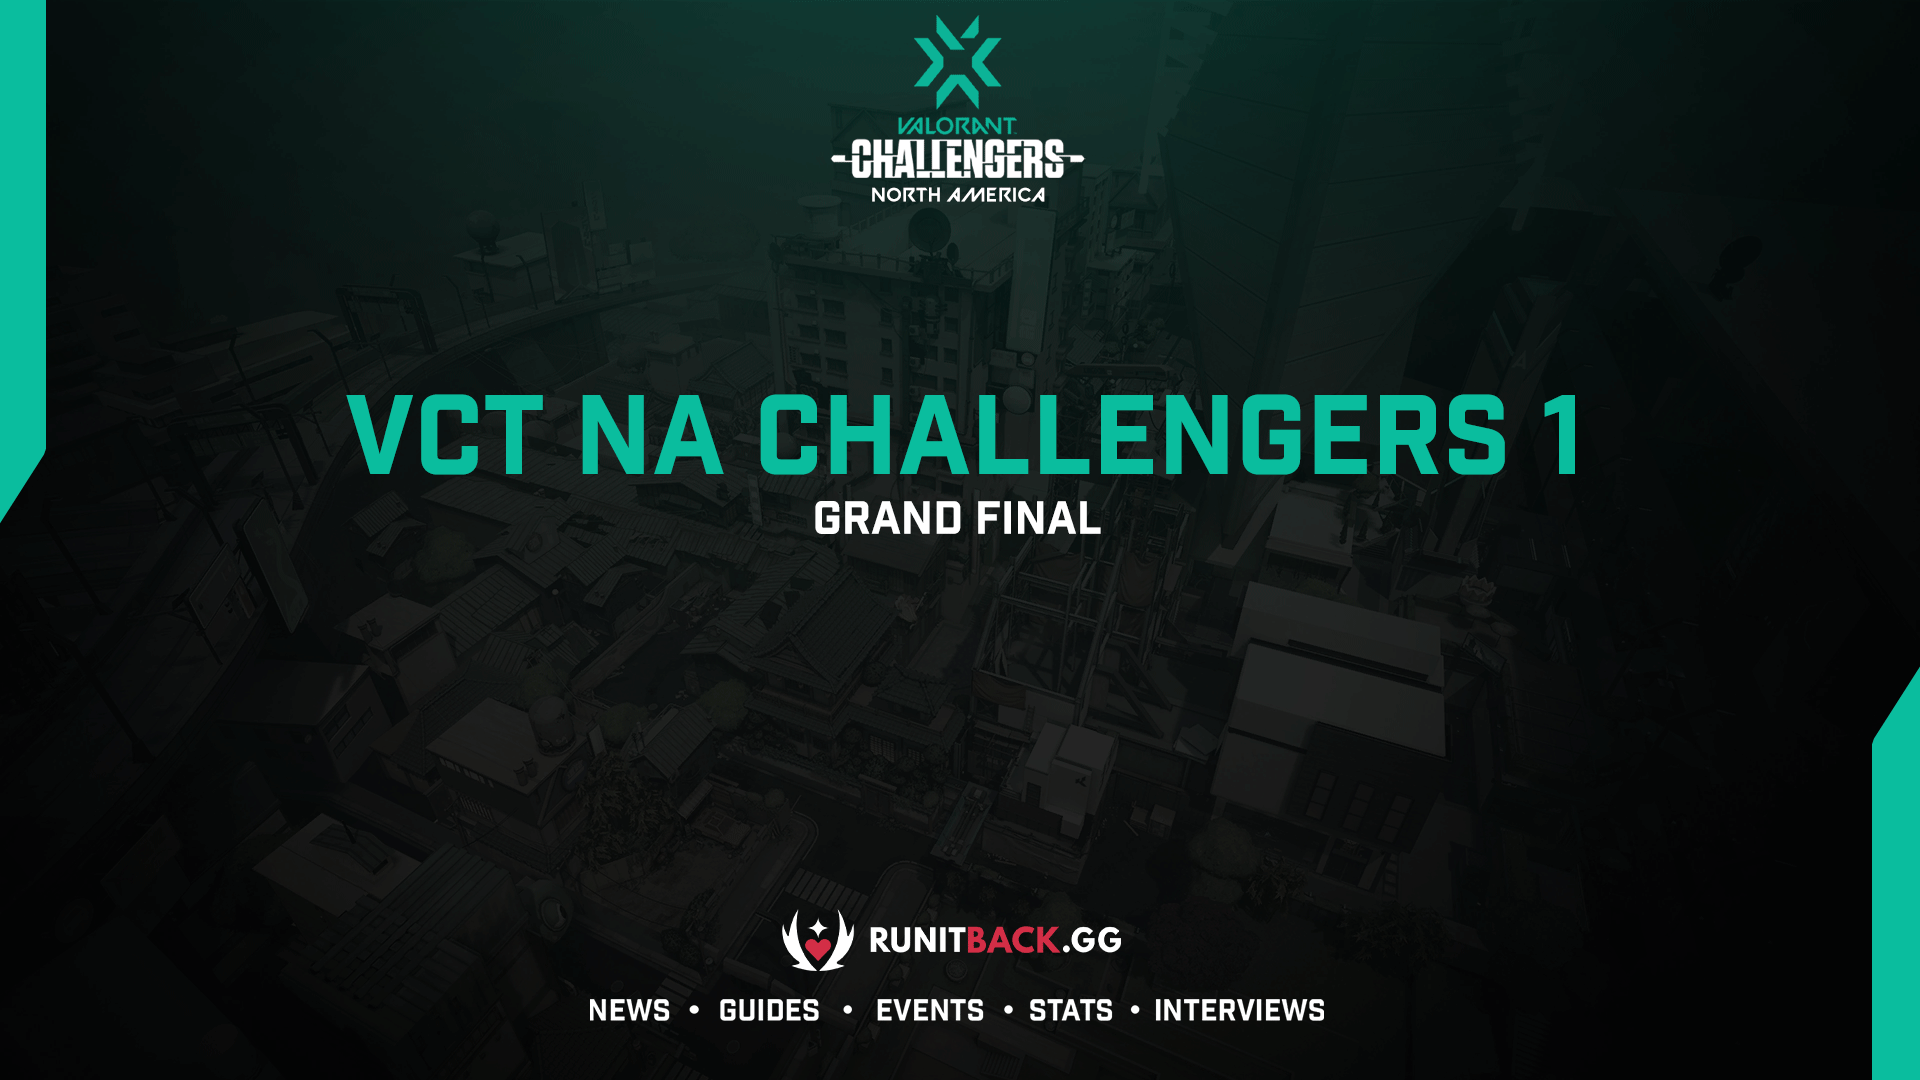 VCT NA Challengers 1 Main Event: Grand Final Results